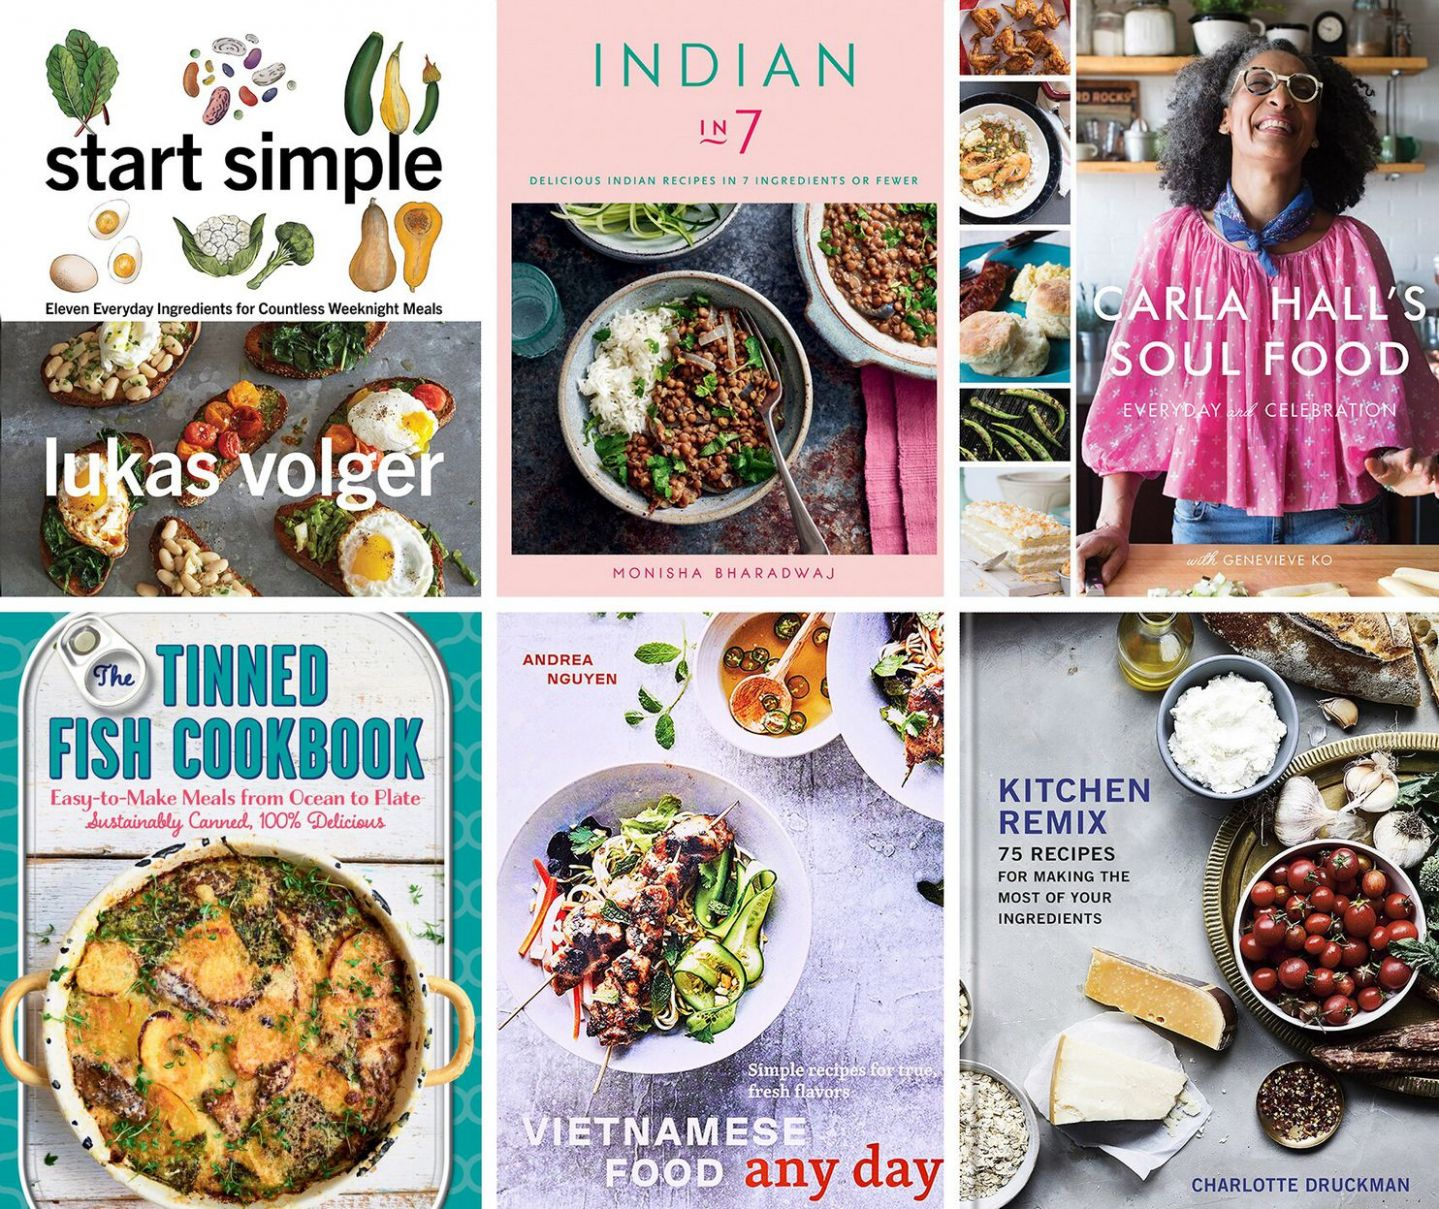 These pantry-friendly cookbooks will inspire you during the ..